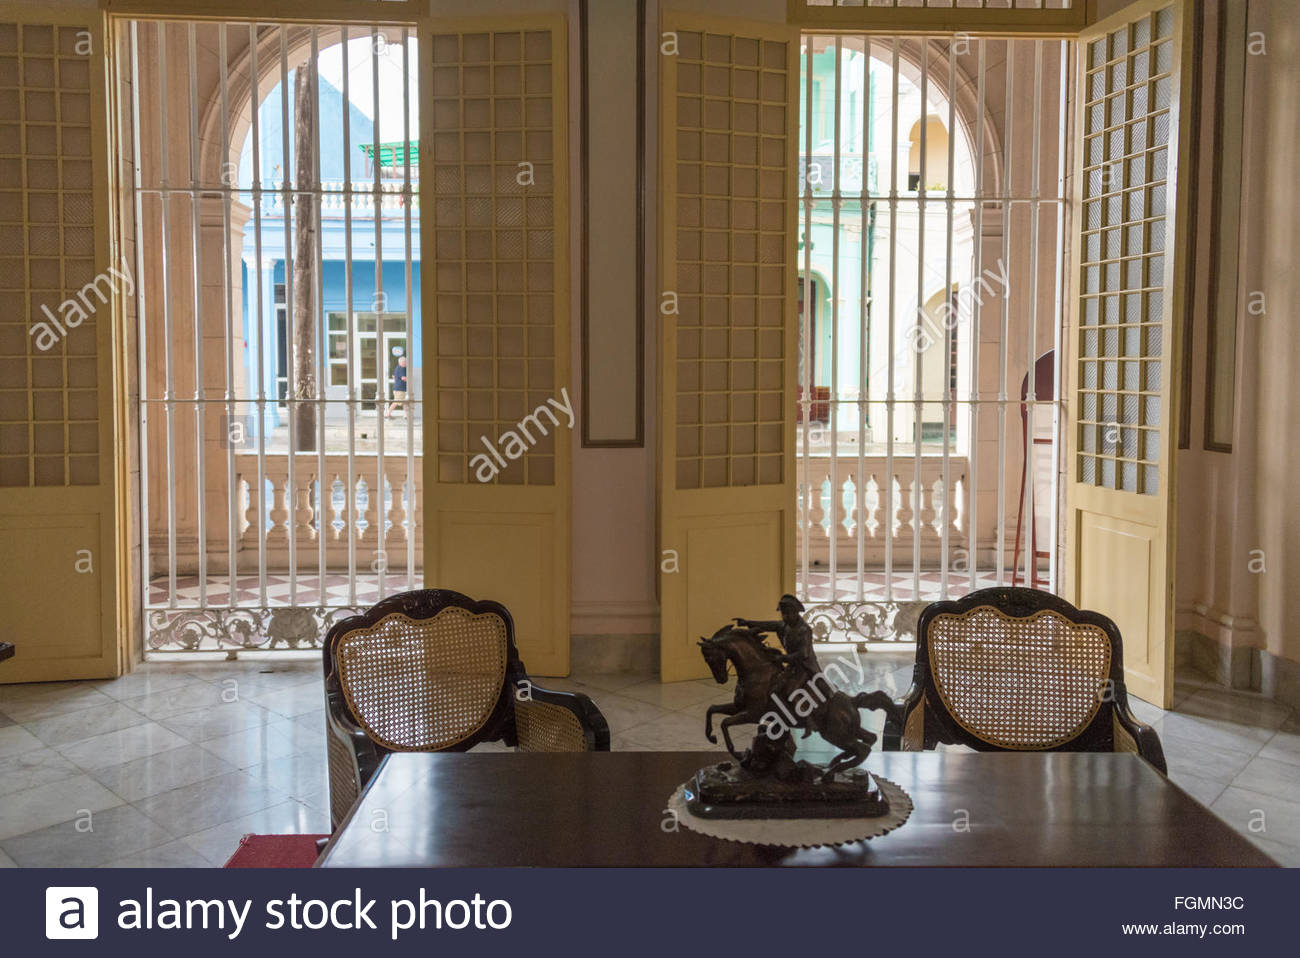 Window Guards And Furniture In The Provincial Museum In A Luxurious Old  Colonial House, Interior Details Of Architecture. The Place Is A Must See  Landmark ...